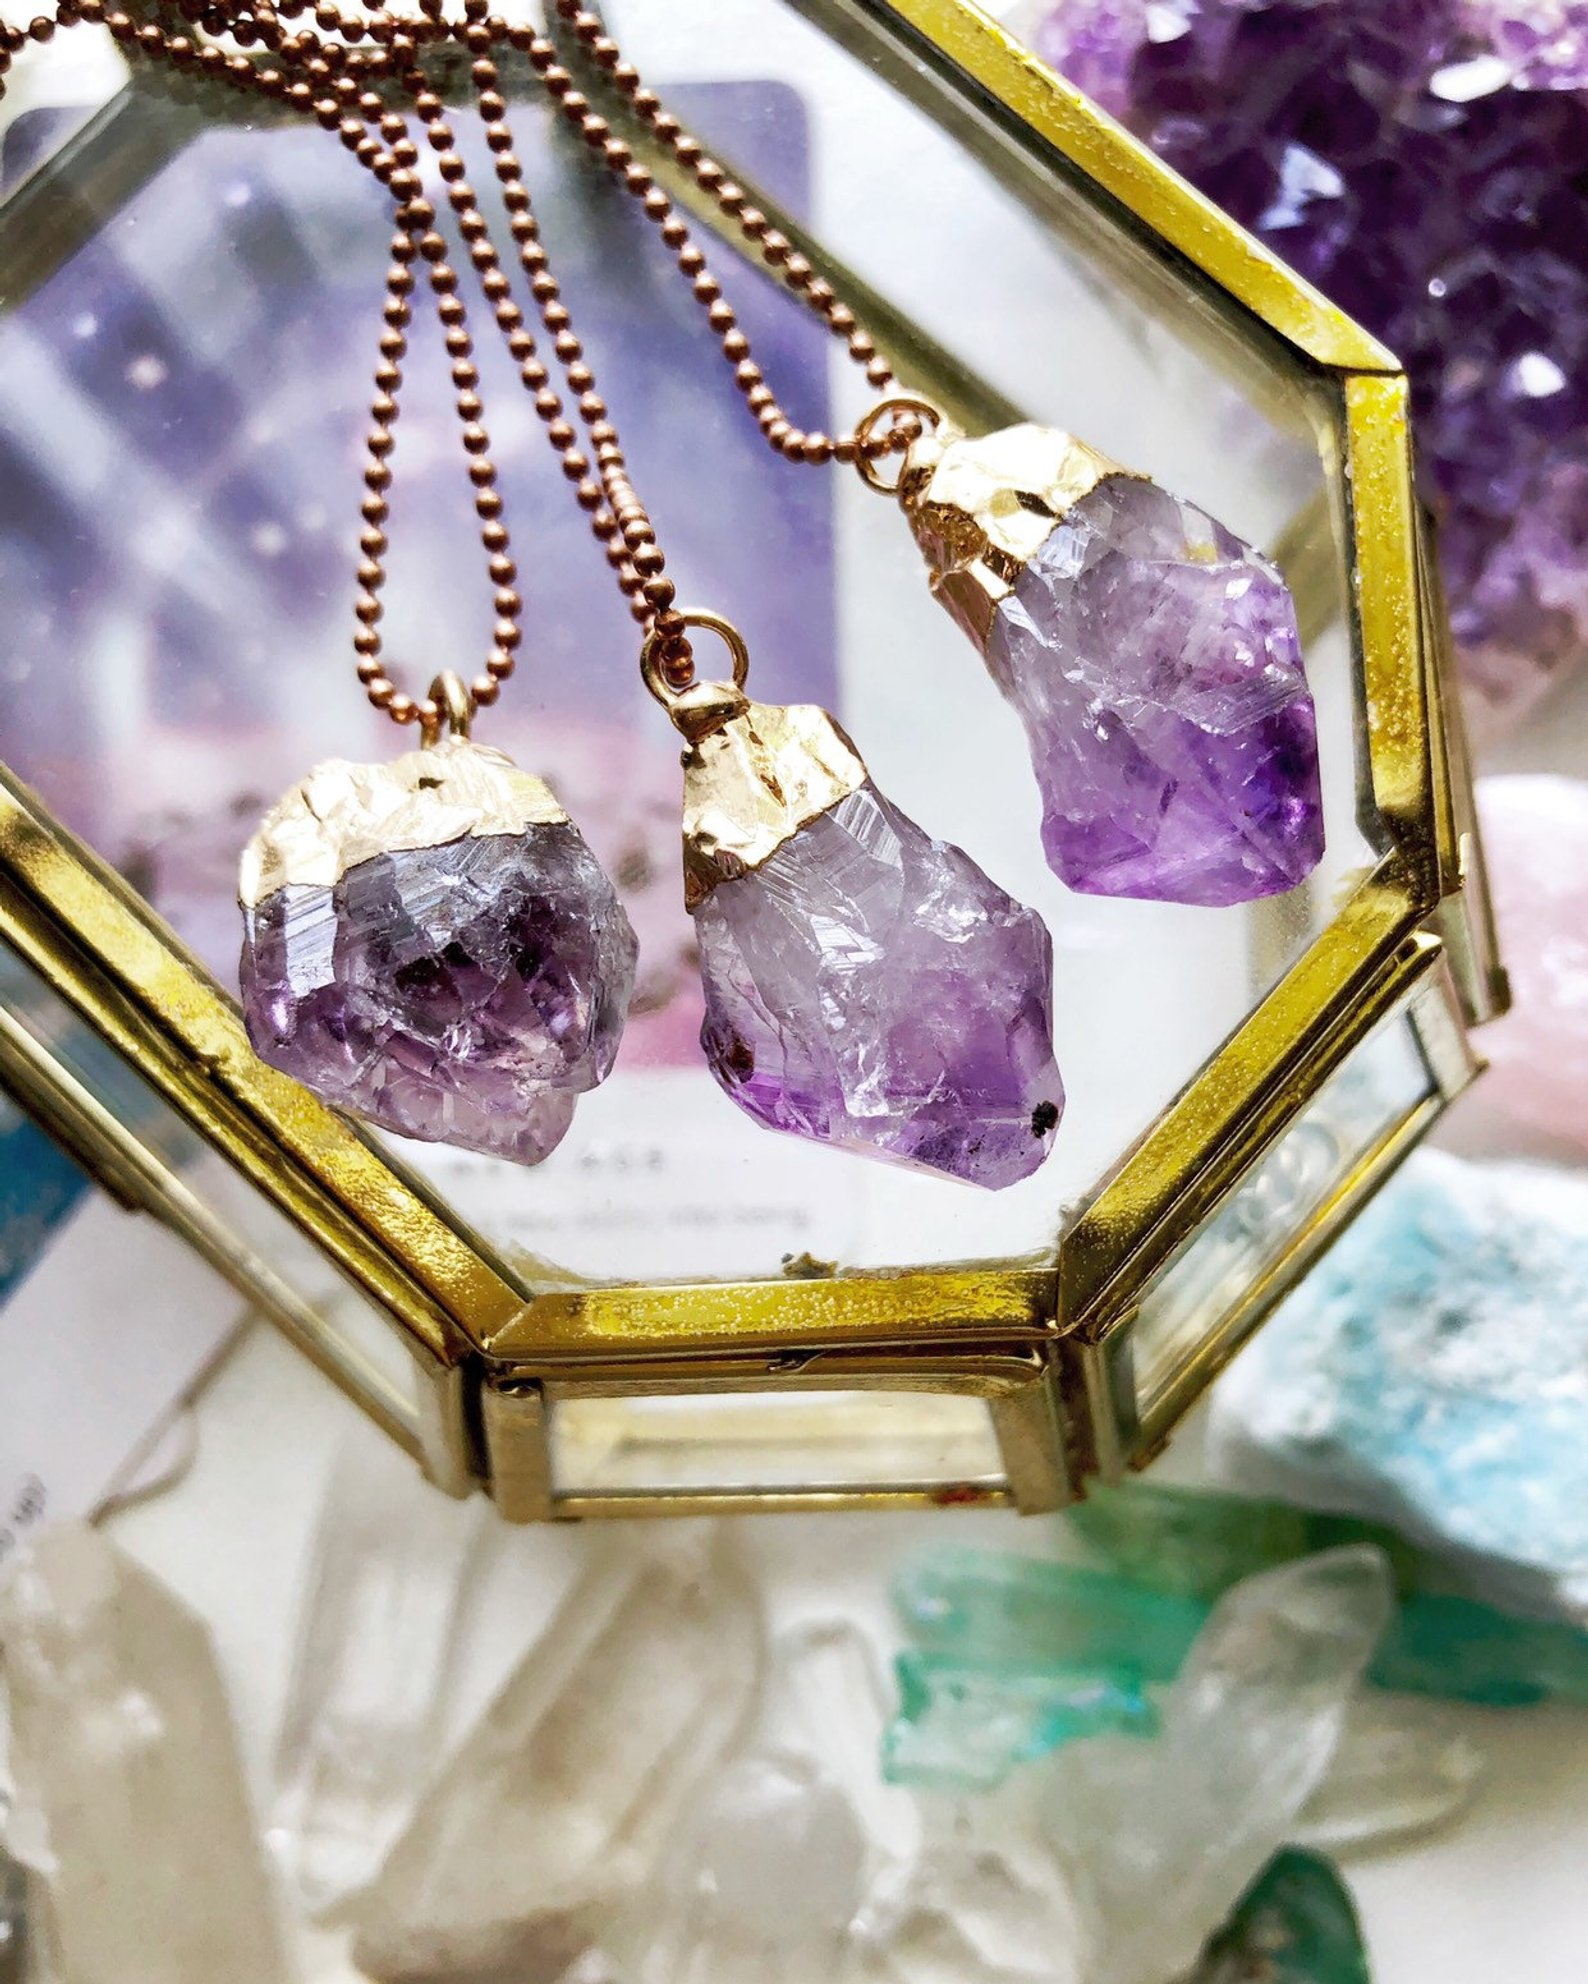 Amethyst Crystal Necklaces By Wisdom Remembered on Etsy